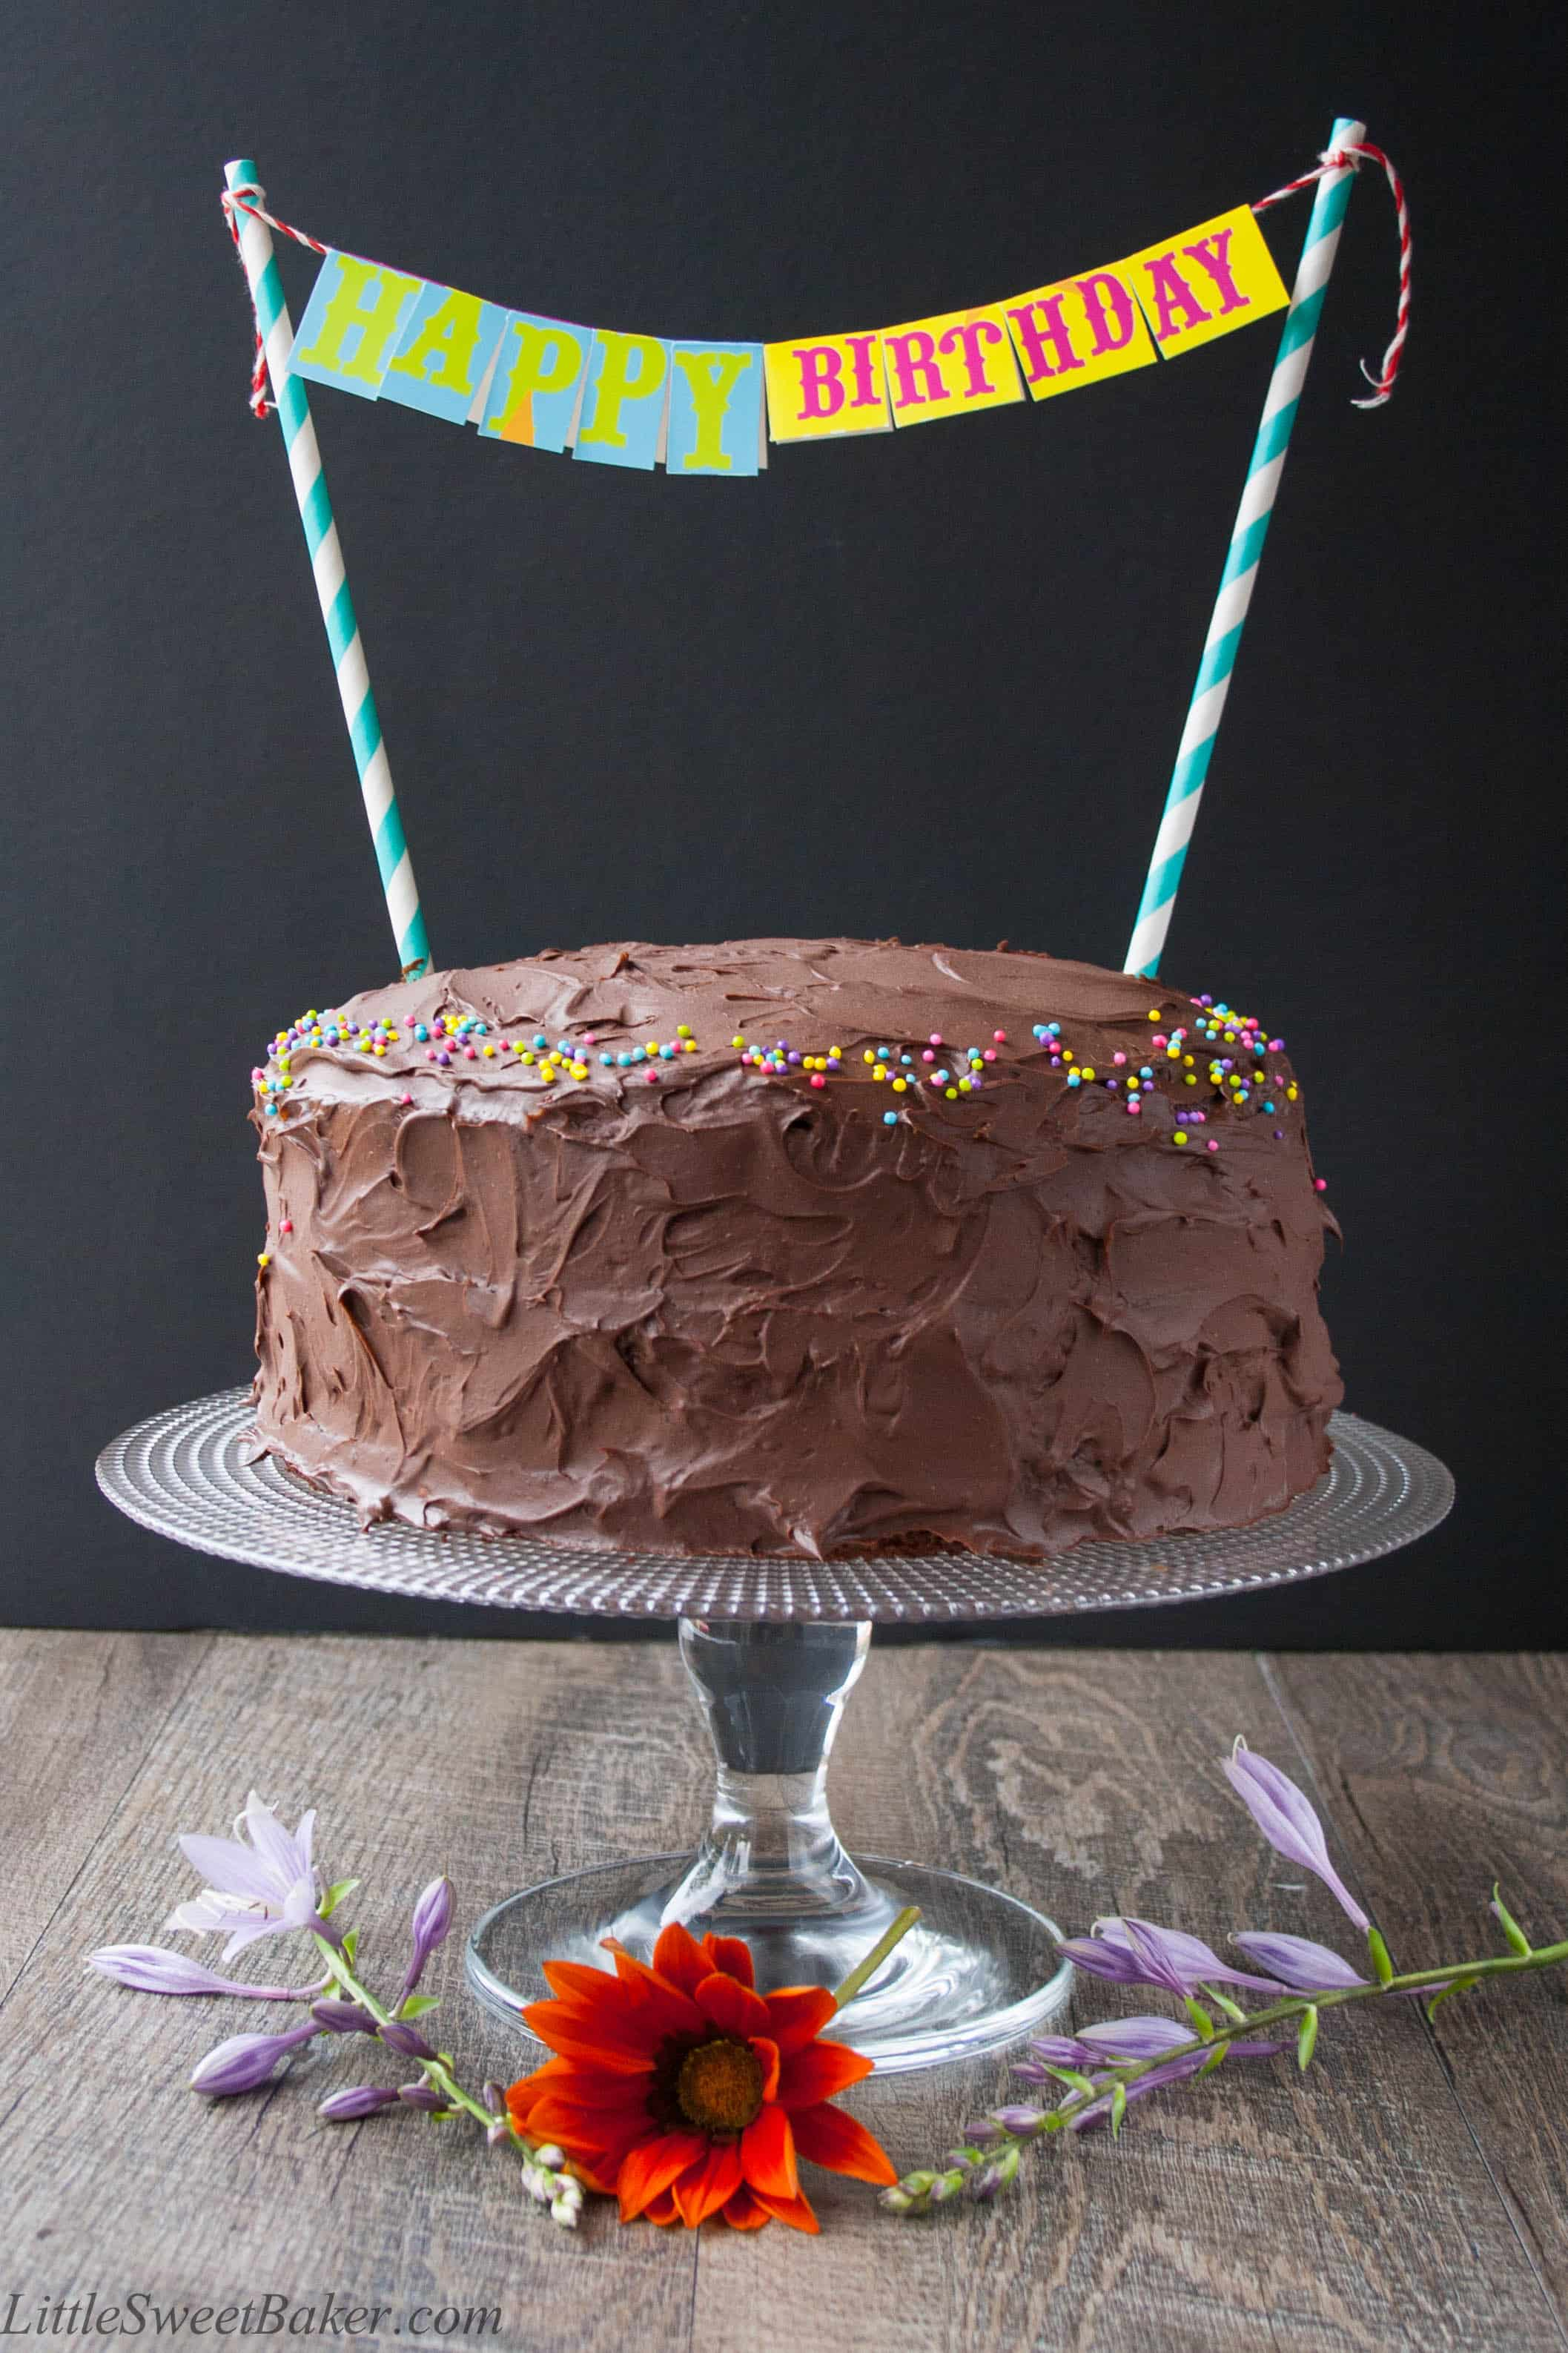 Chocolate Birthday Cake - Little Sweet Baker